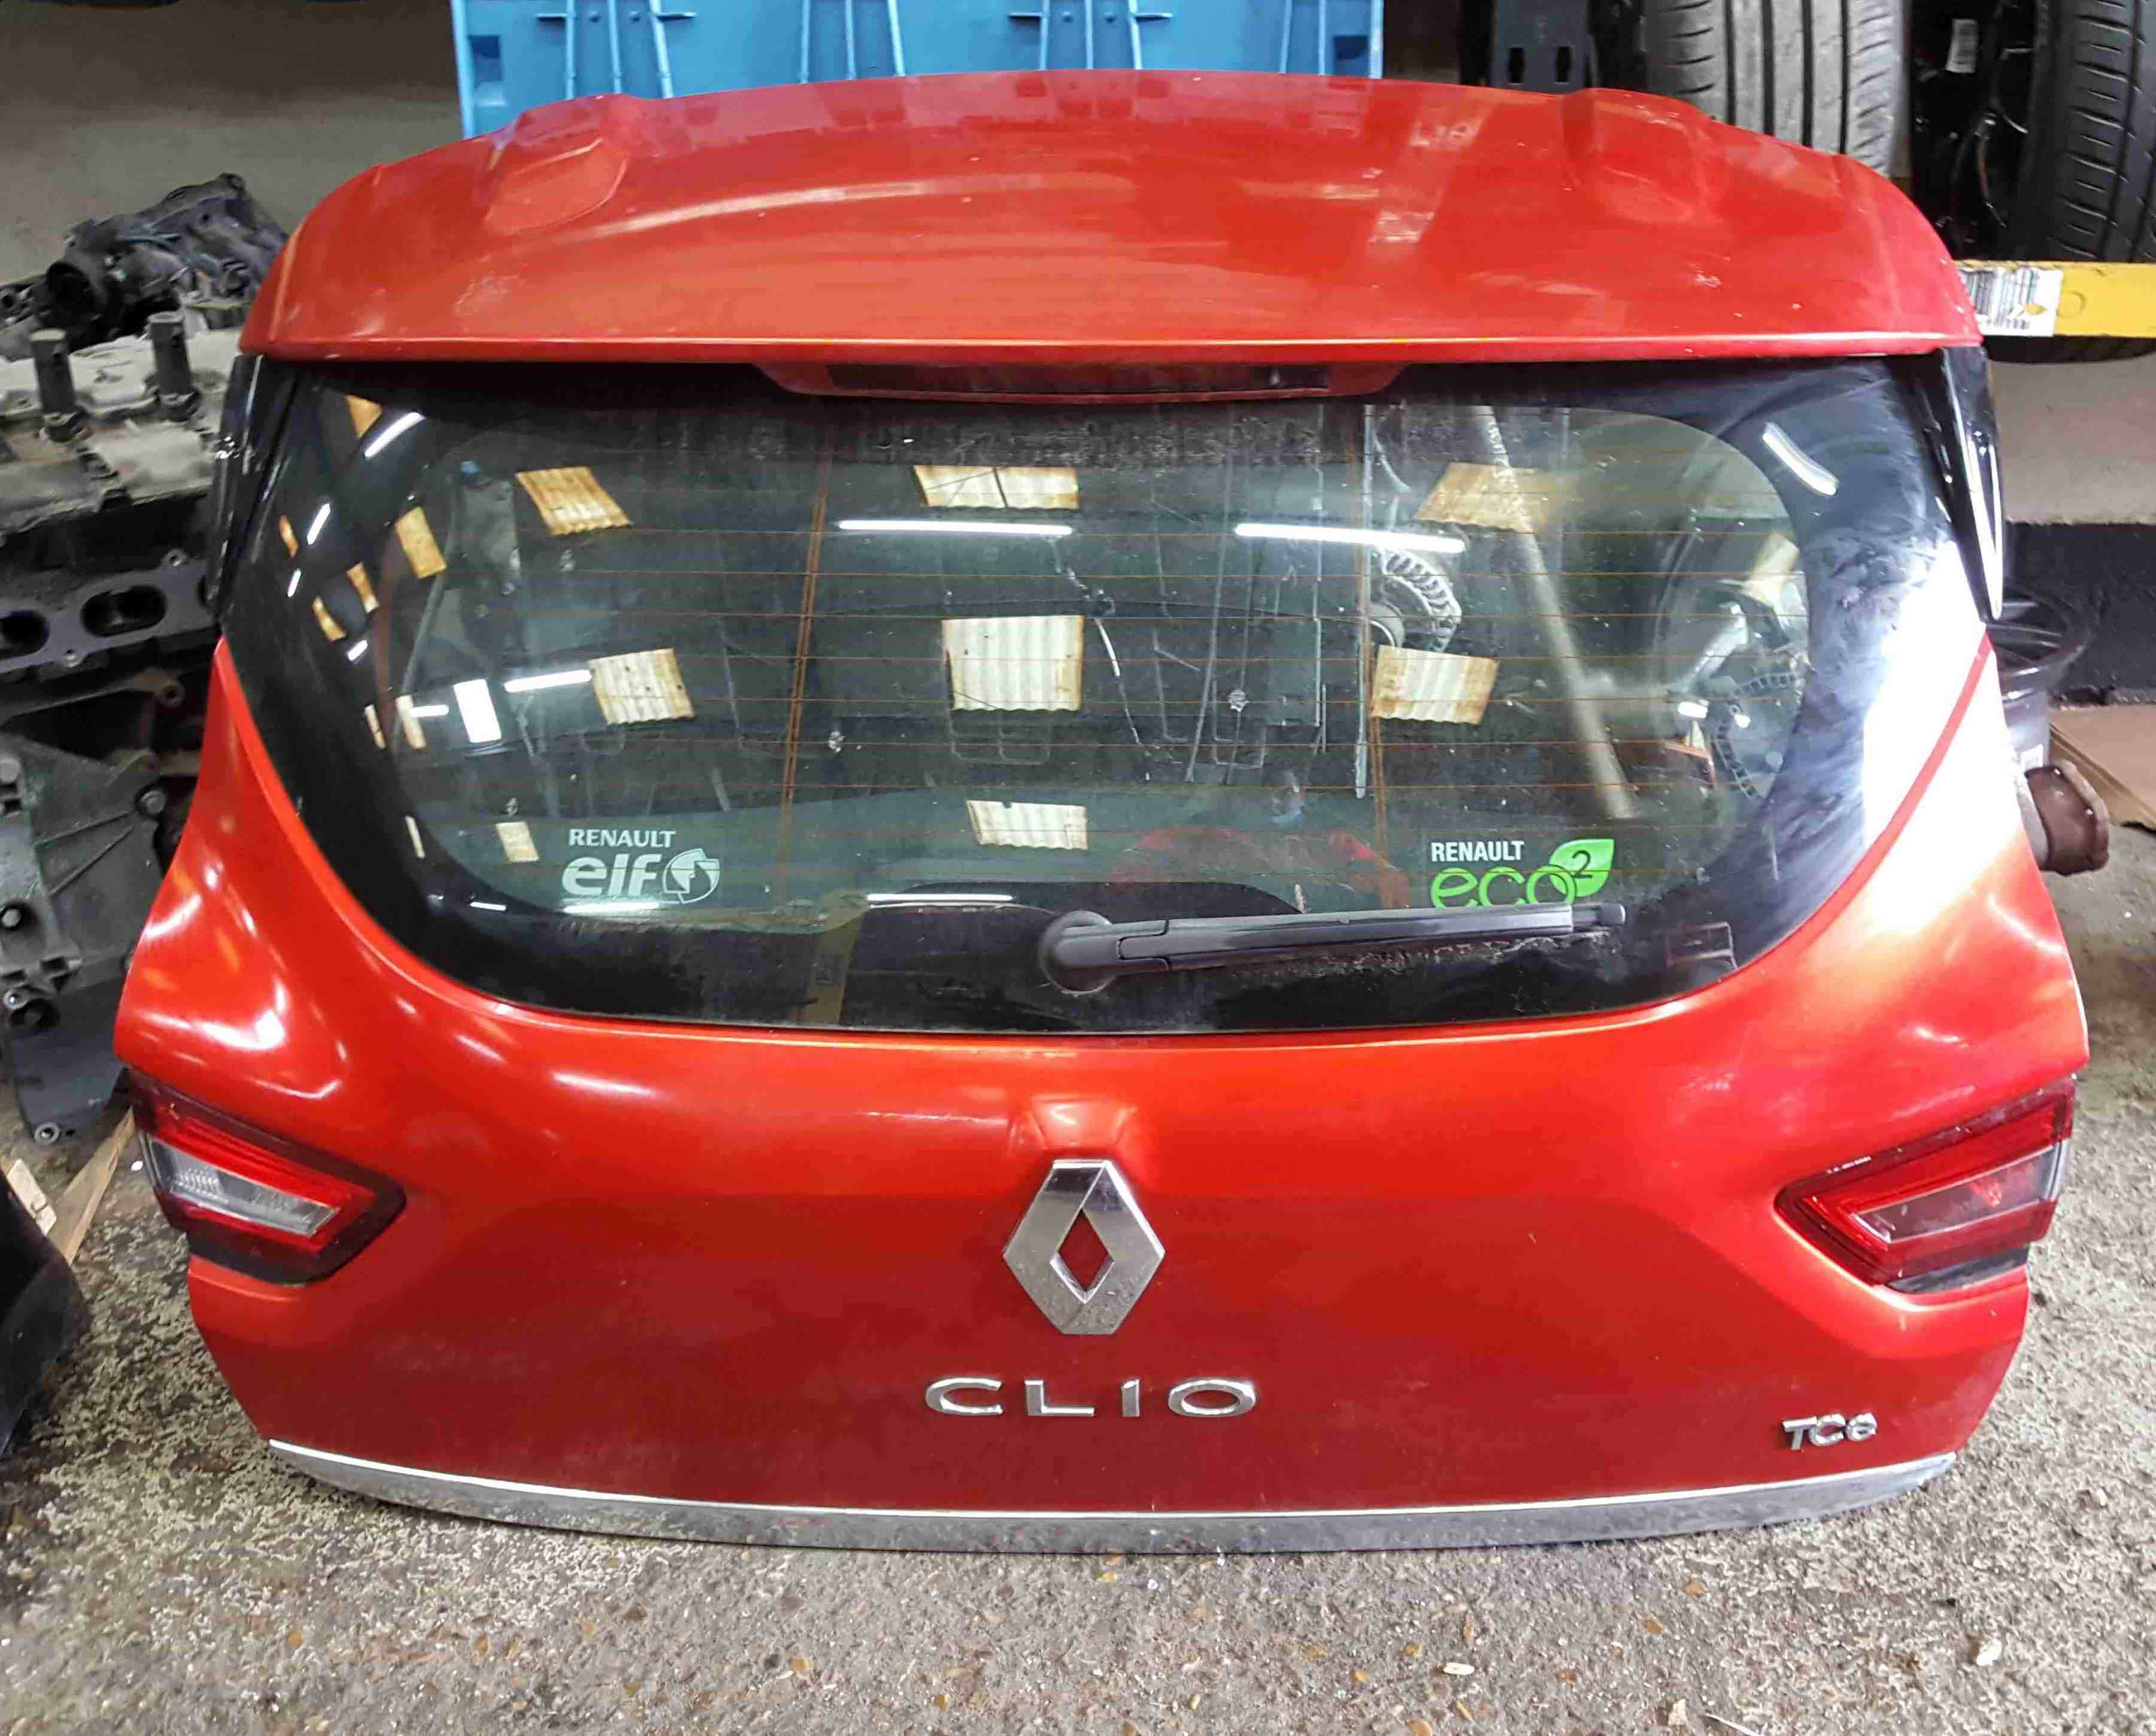 Renault Clio MK4 2013-2018 Rear Tailgate Boot Red TENNP